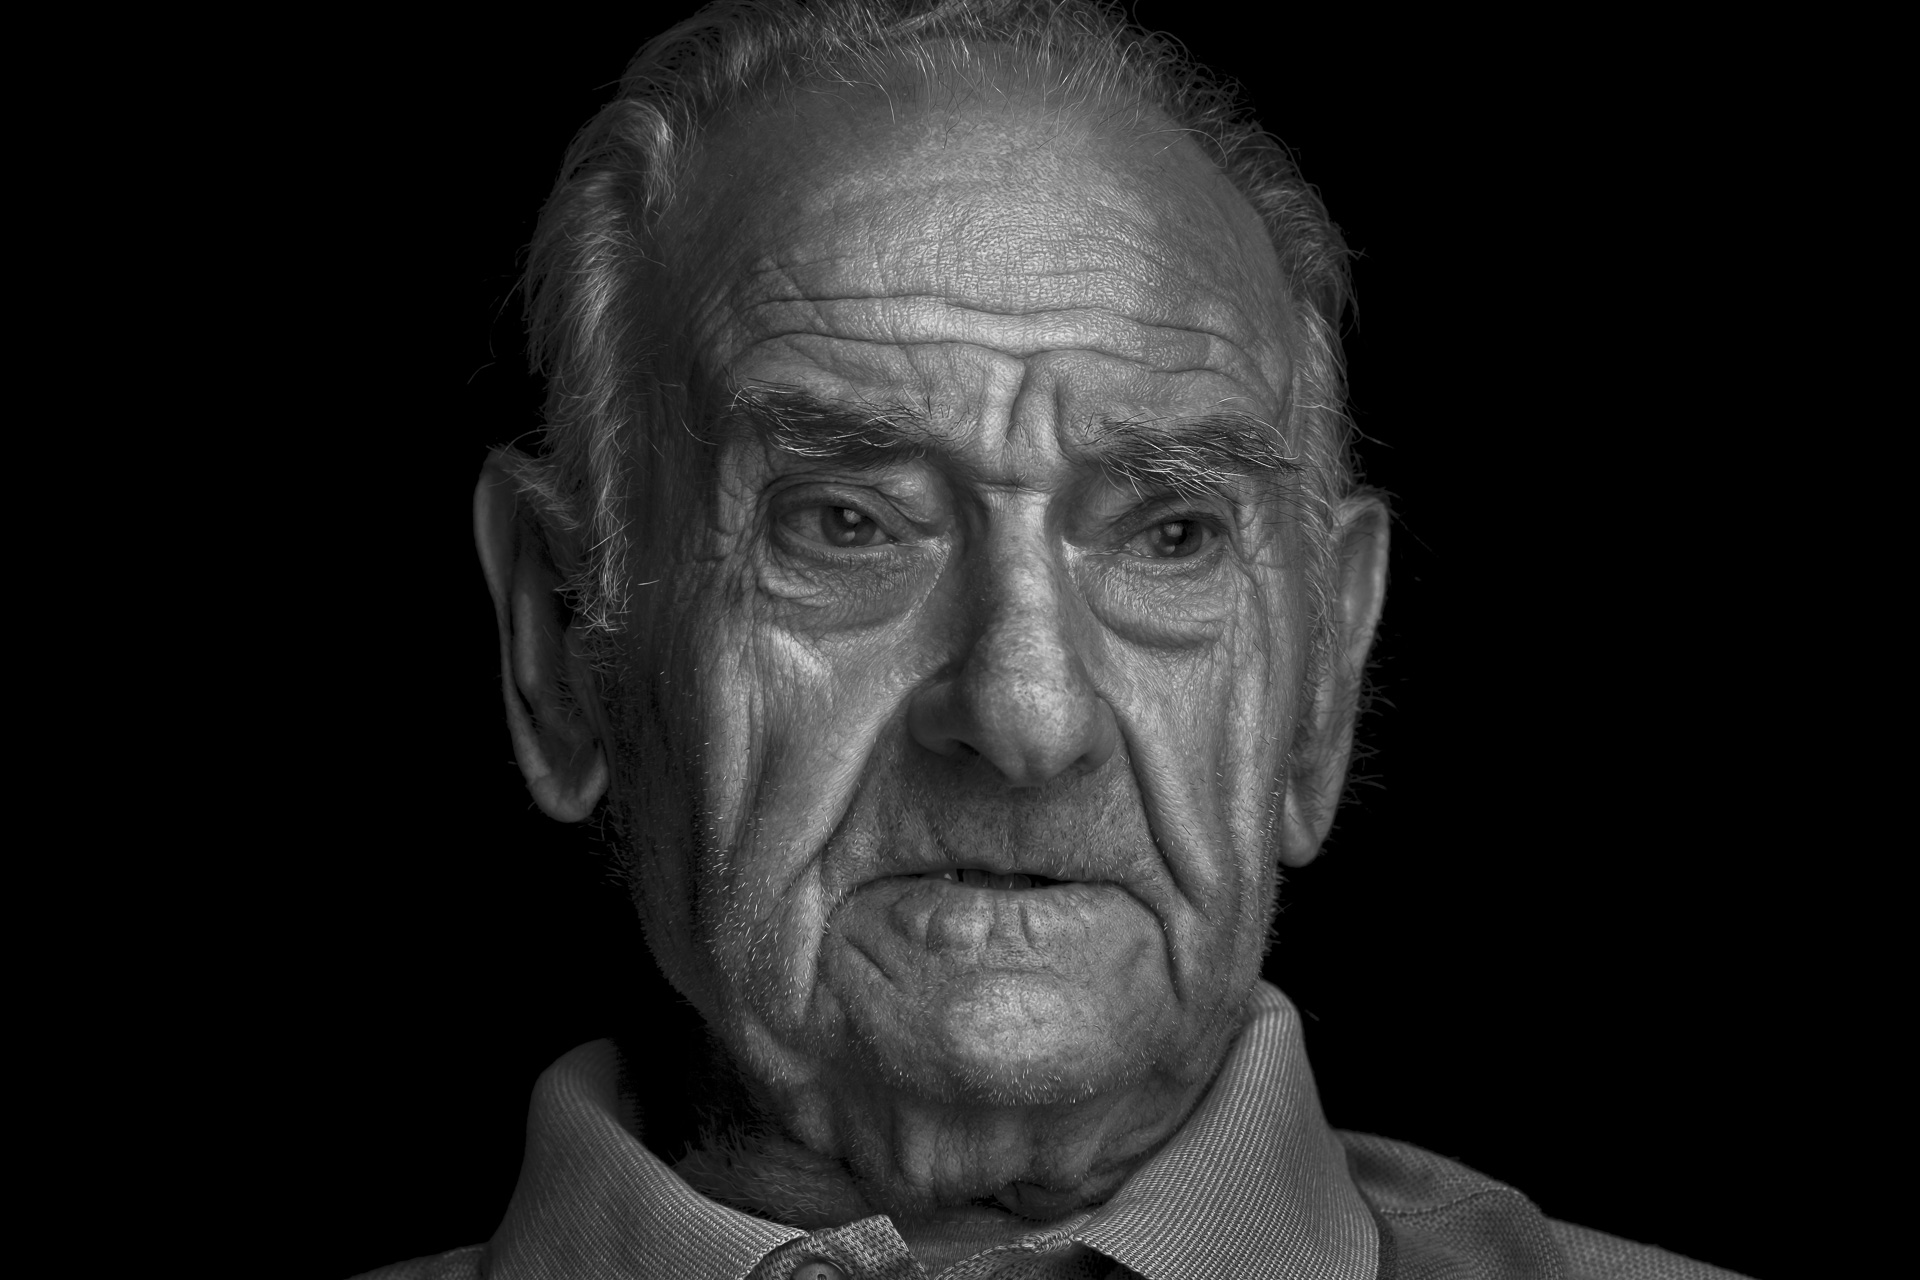 Old man portrait - Dario Nicolai